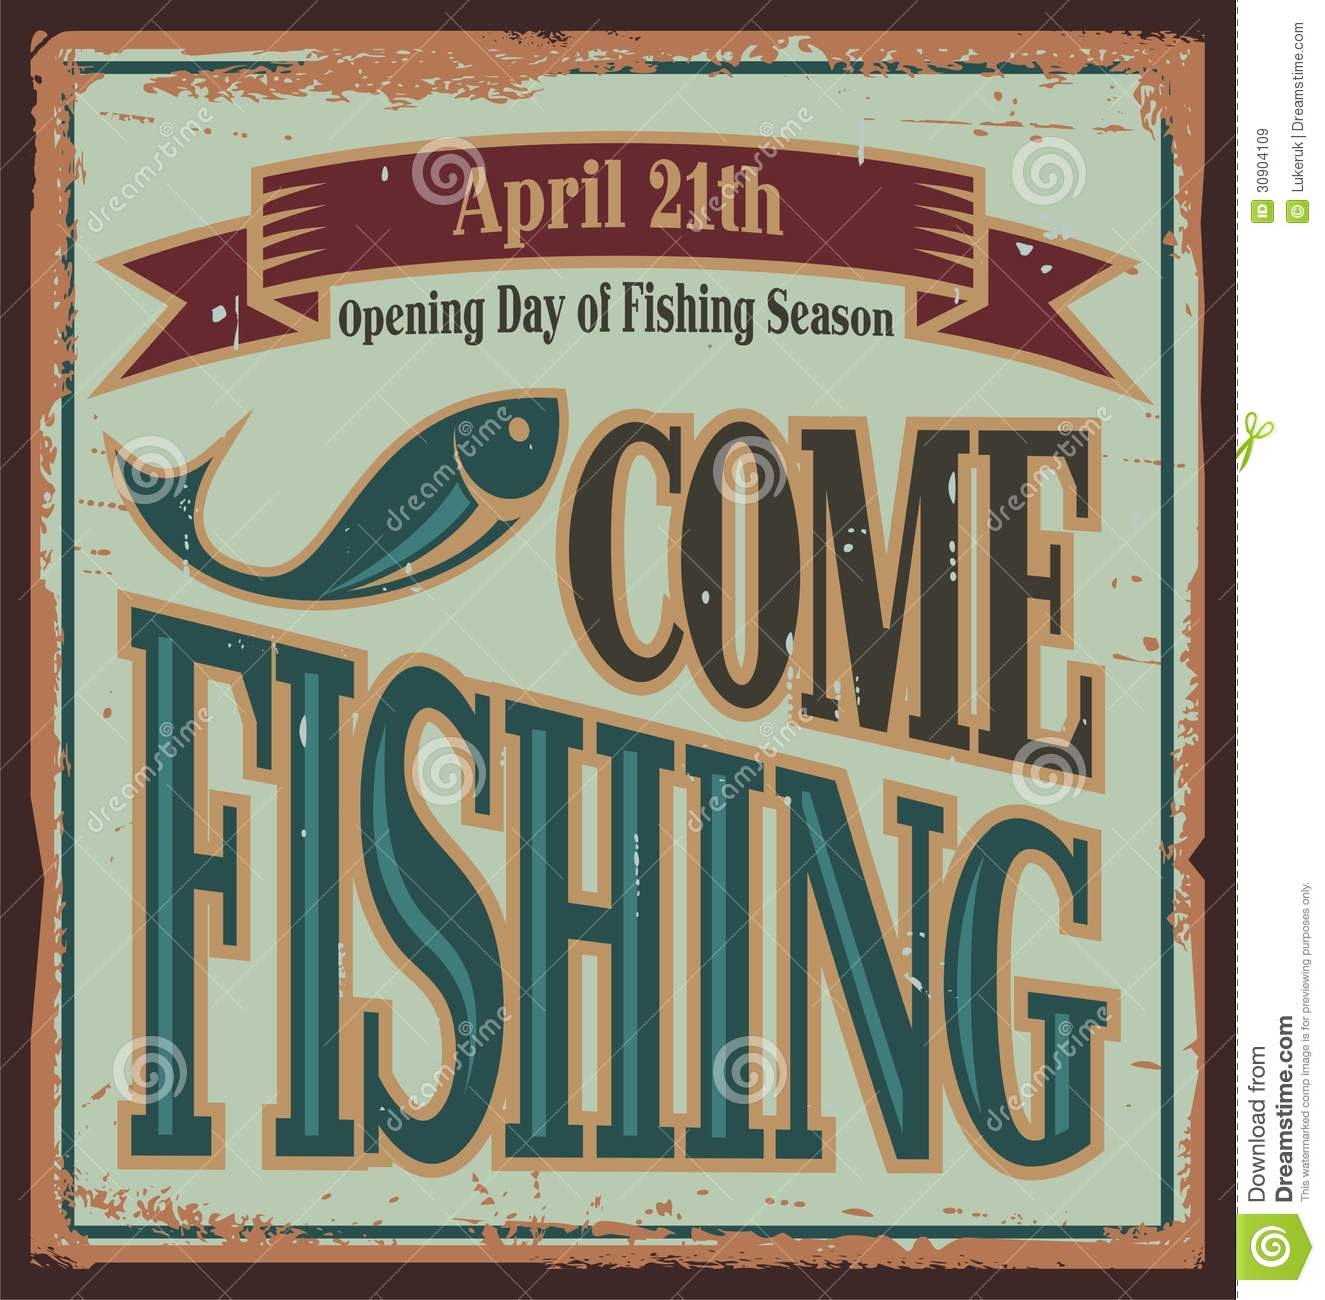 Vintage fishing metal sign stock vector. Illustration of template ...